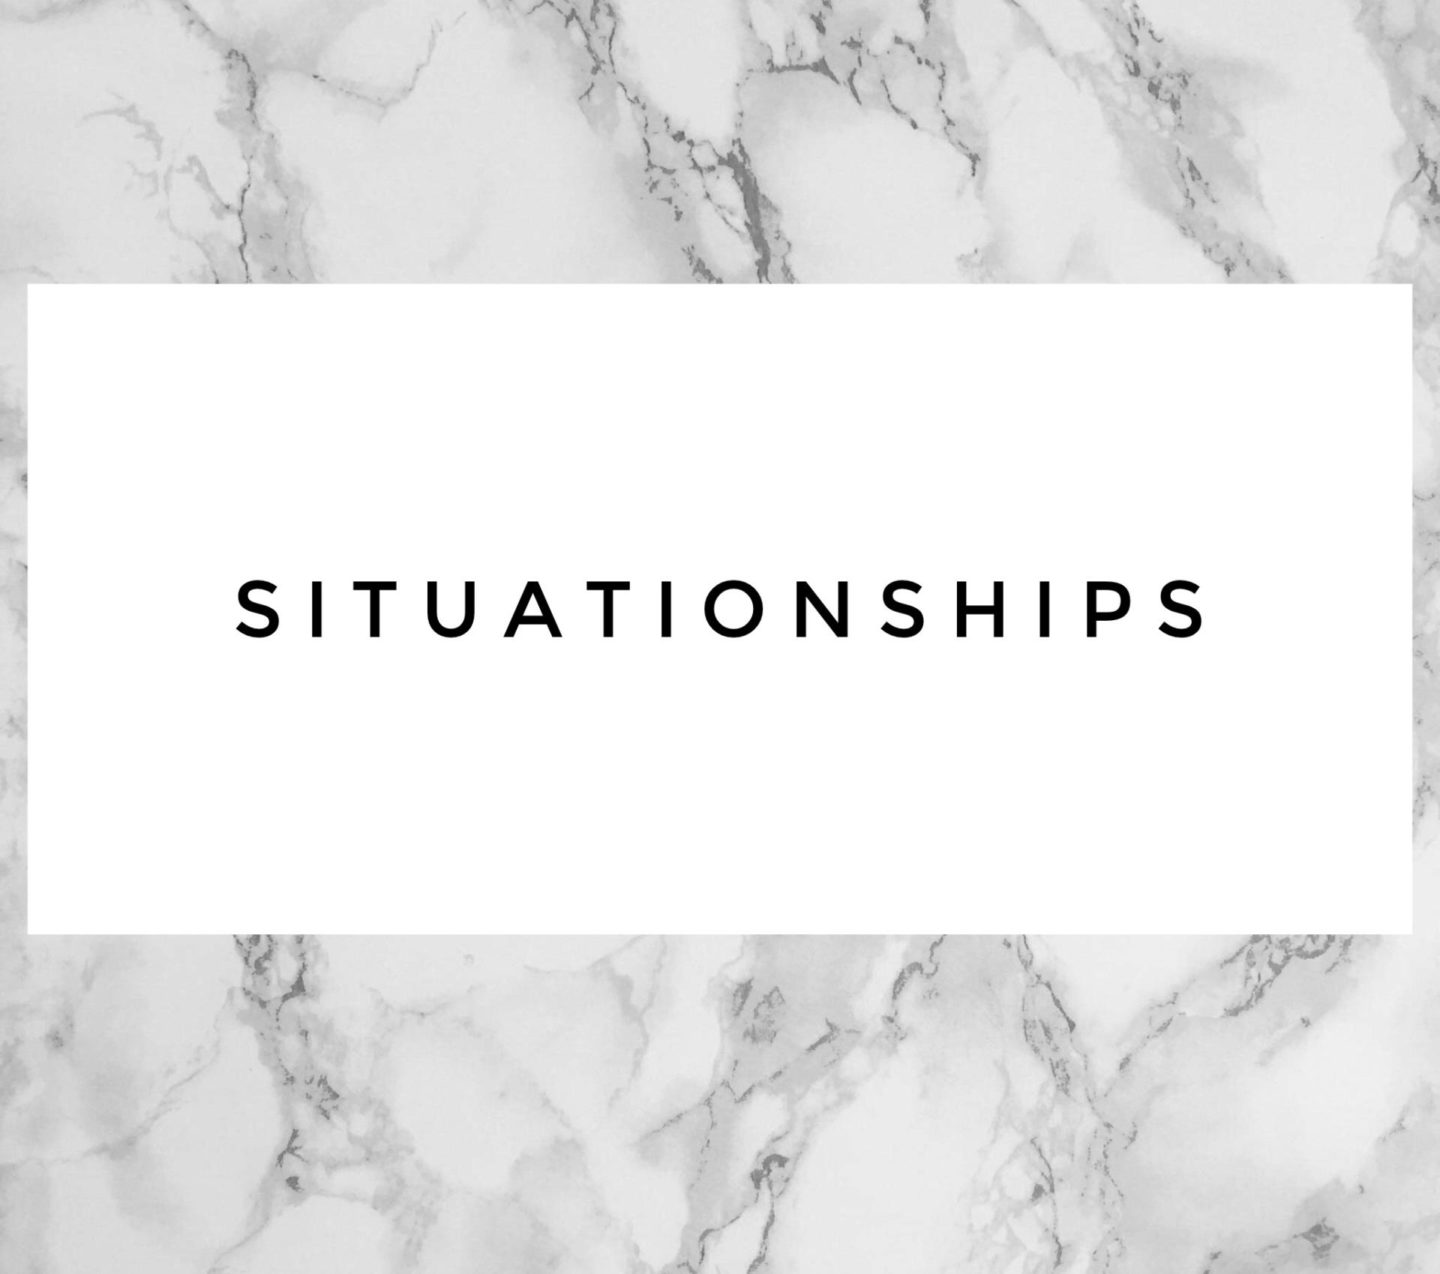 I'm Just Saying: Situationships Might Be the Move